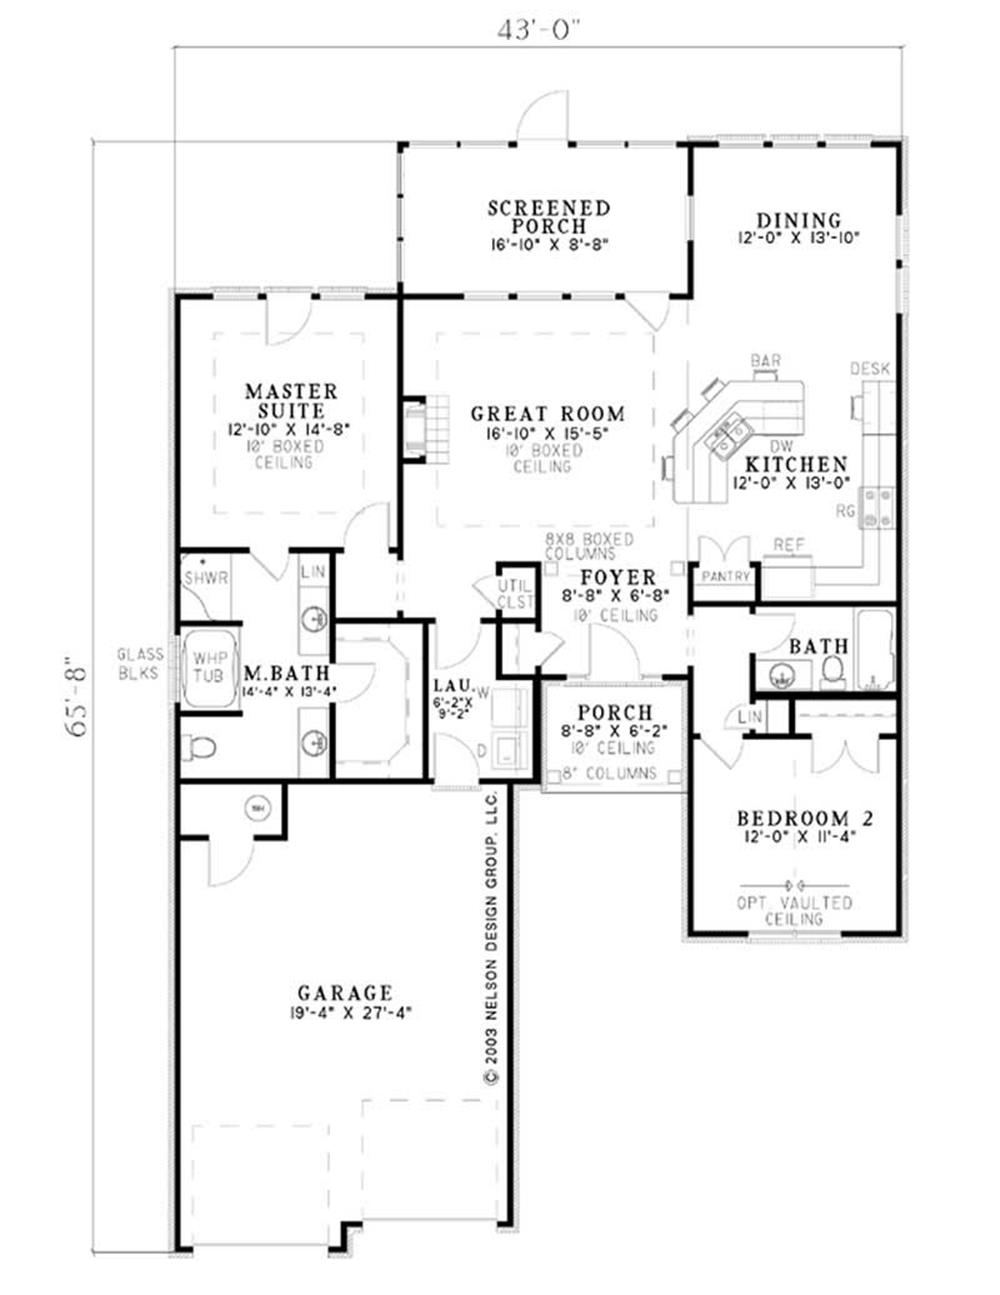 Large Images For House Plan 153 1528